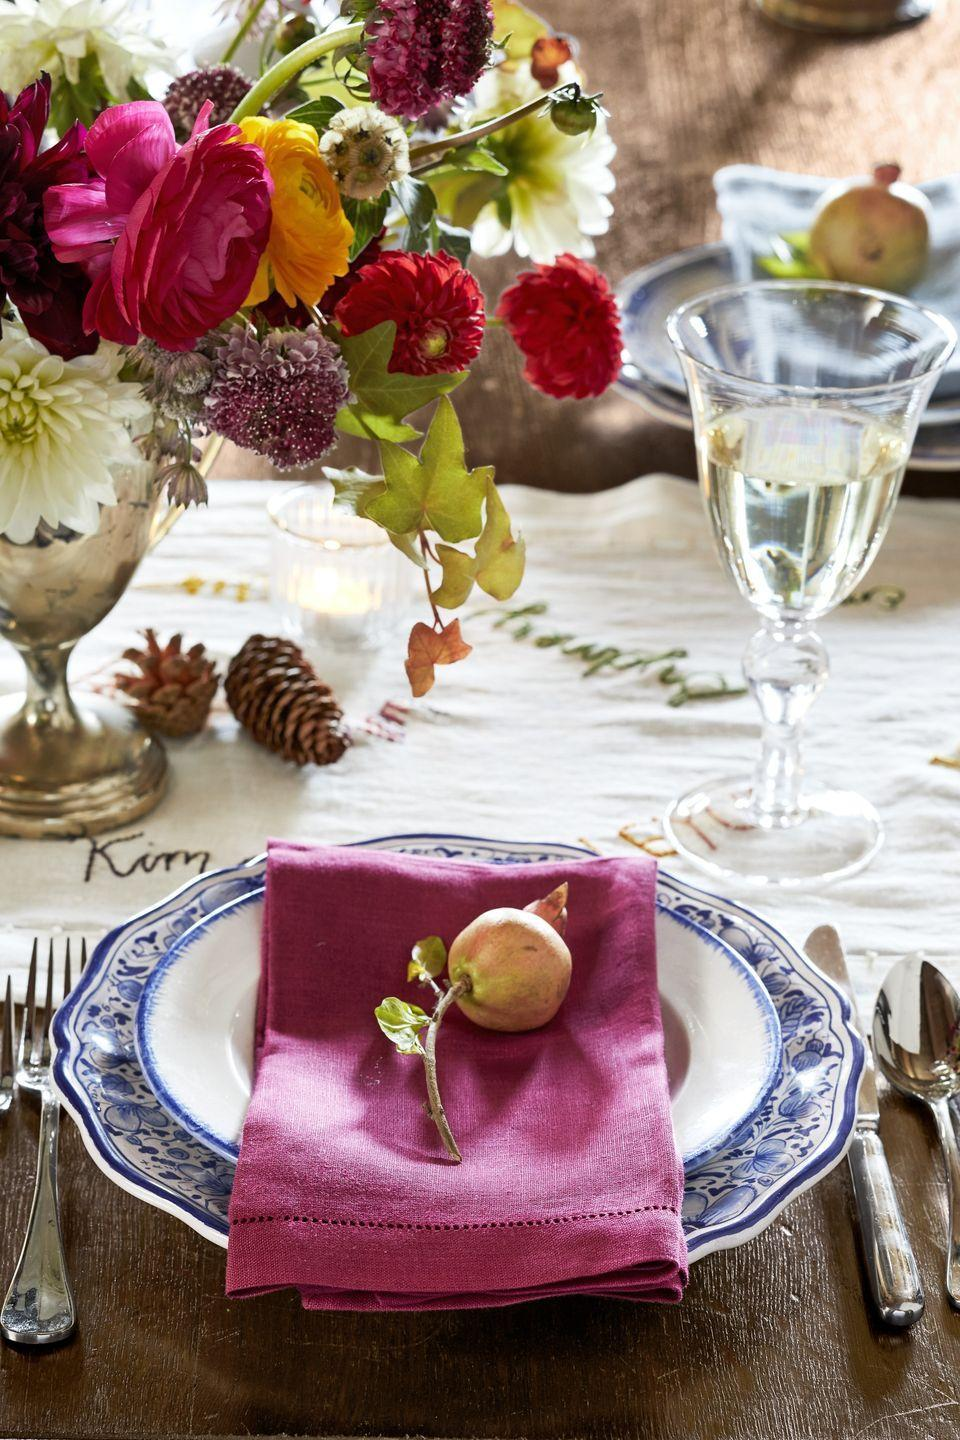 """<p>Create a simple, yet chic, tablescape with pieces of seasonal fruit topping a linen napkin laid on each plate. Add vases of fresh flowers in vintage trophies down the table too for an effortlessly undone fall look. </p><p><a class=""""link rapid-noclick-resp"""" href=""""https://www.amazon.com/Cotton-Craft-Napkins-20-Inch-Multi-Colors/dp/B009LI9O0E/?tag=syn-yahoo-20&ascsubtag=%5Bartid%7C10050.g.1371%5Bsrc%7Cyahoo-us"""" rel=""""nofollow noopener"""" target=""""_blank"""" data-ylk=""""slk:SHOP LINEN NAPKINS"""">SHOP LINEN NAPKINS</a></p>"""